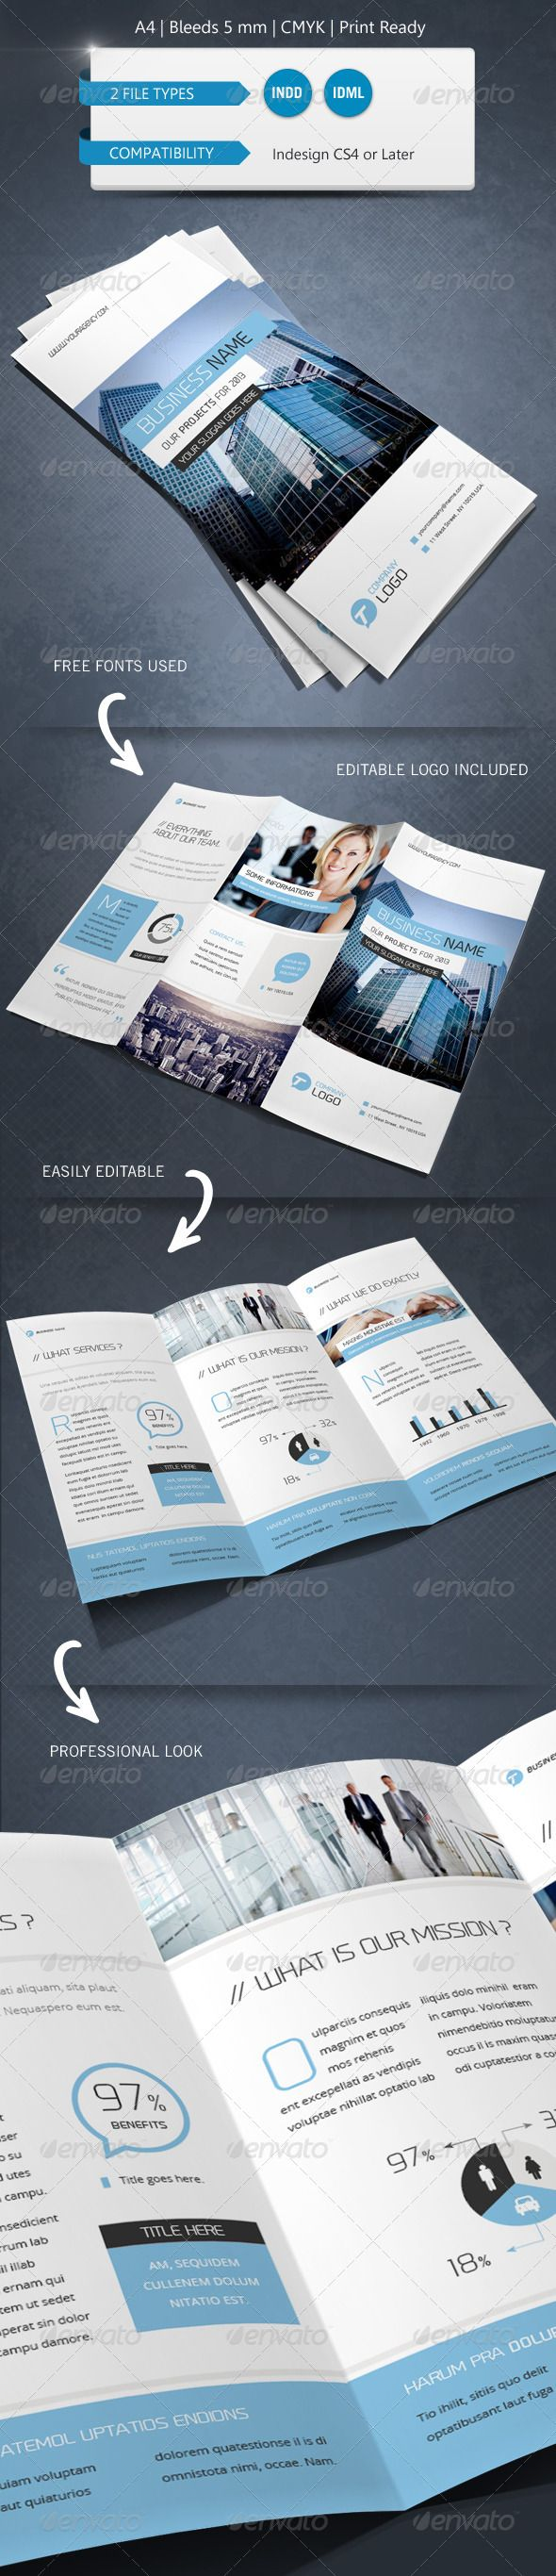 Best Images About Trifold Brochure On Pinterest Fonts - Indesign trifold brochure template